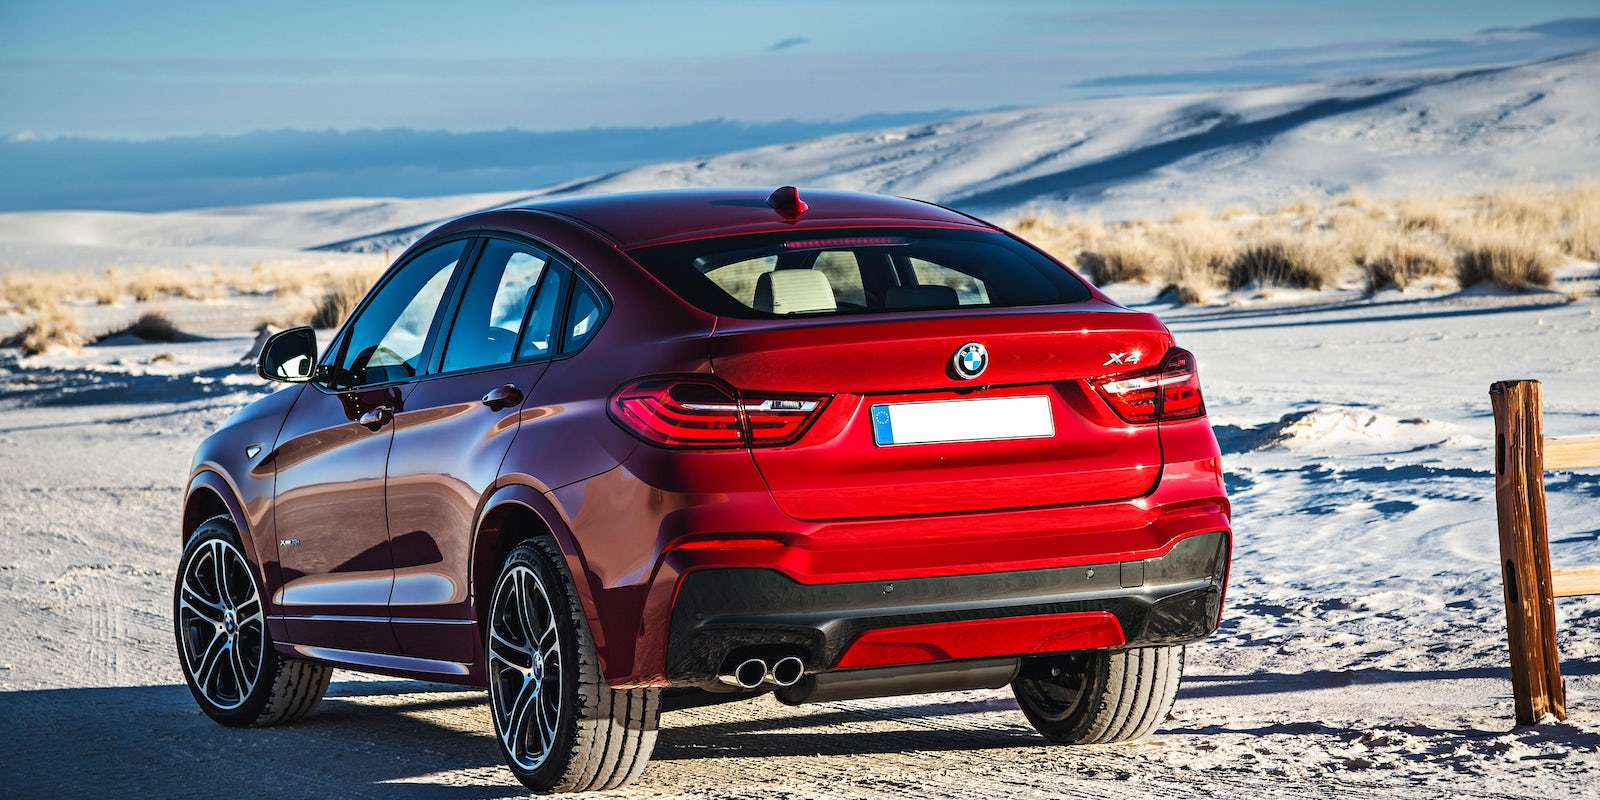 BMW X4 practicality and boot space | carwow